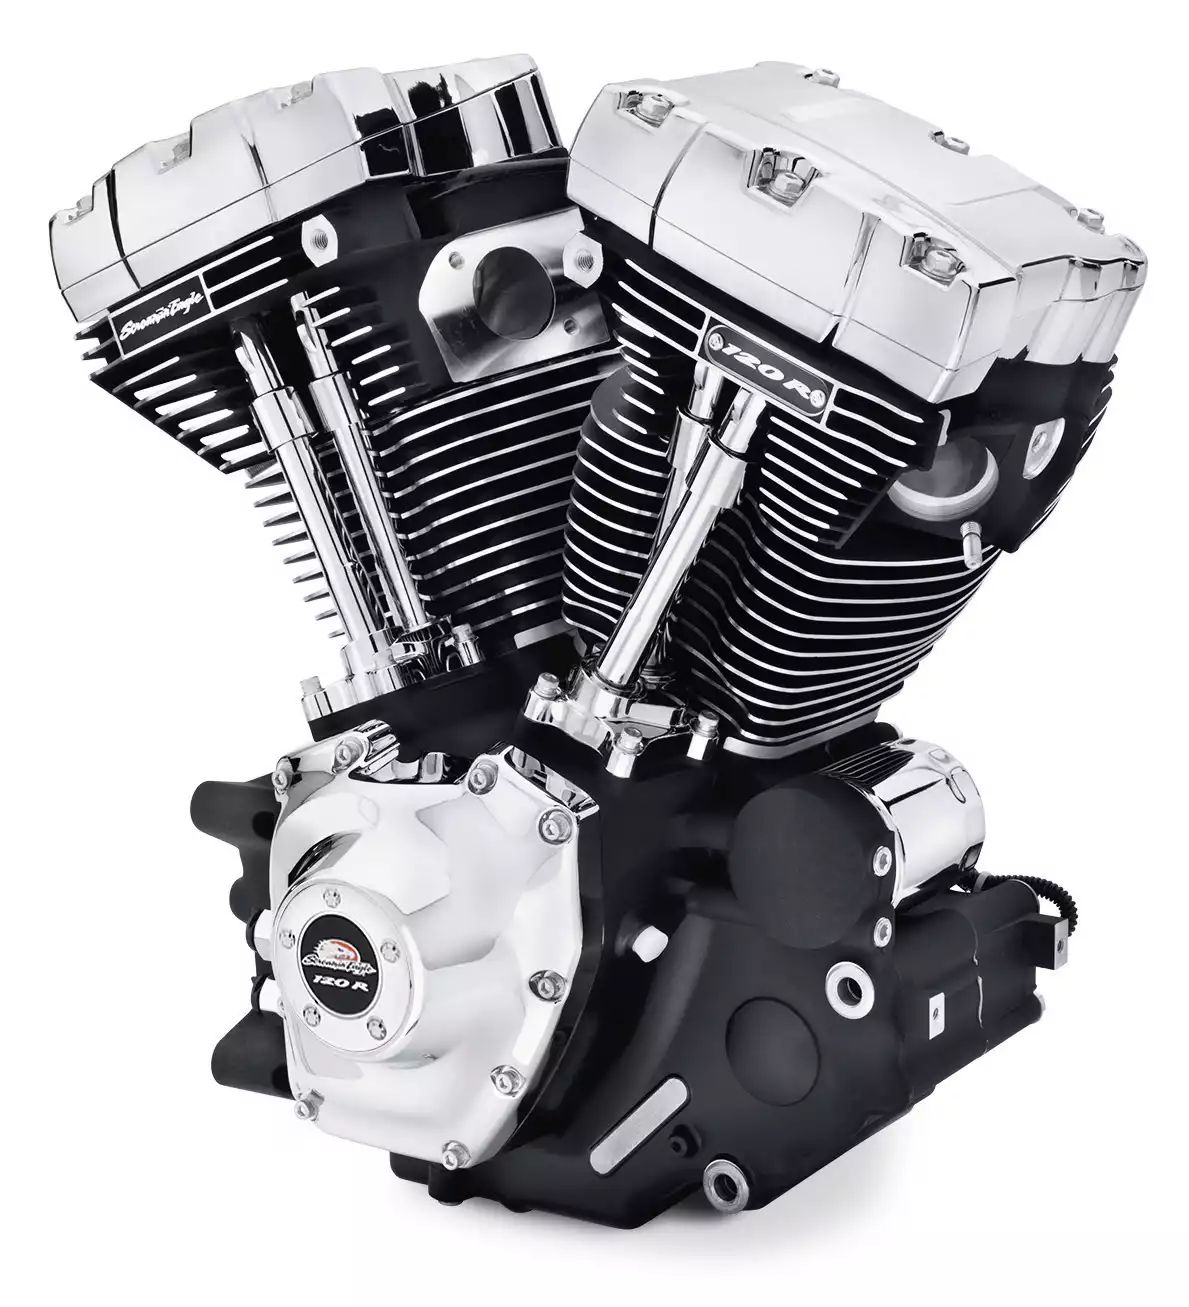 Harley Davidson Screamin Eagle Parts And Accessories Html Auto Screaming Wiring Diagram